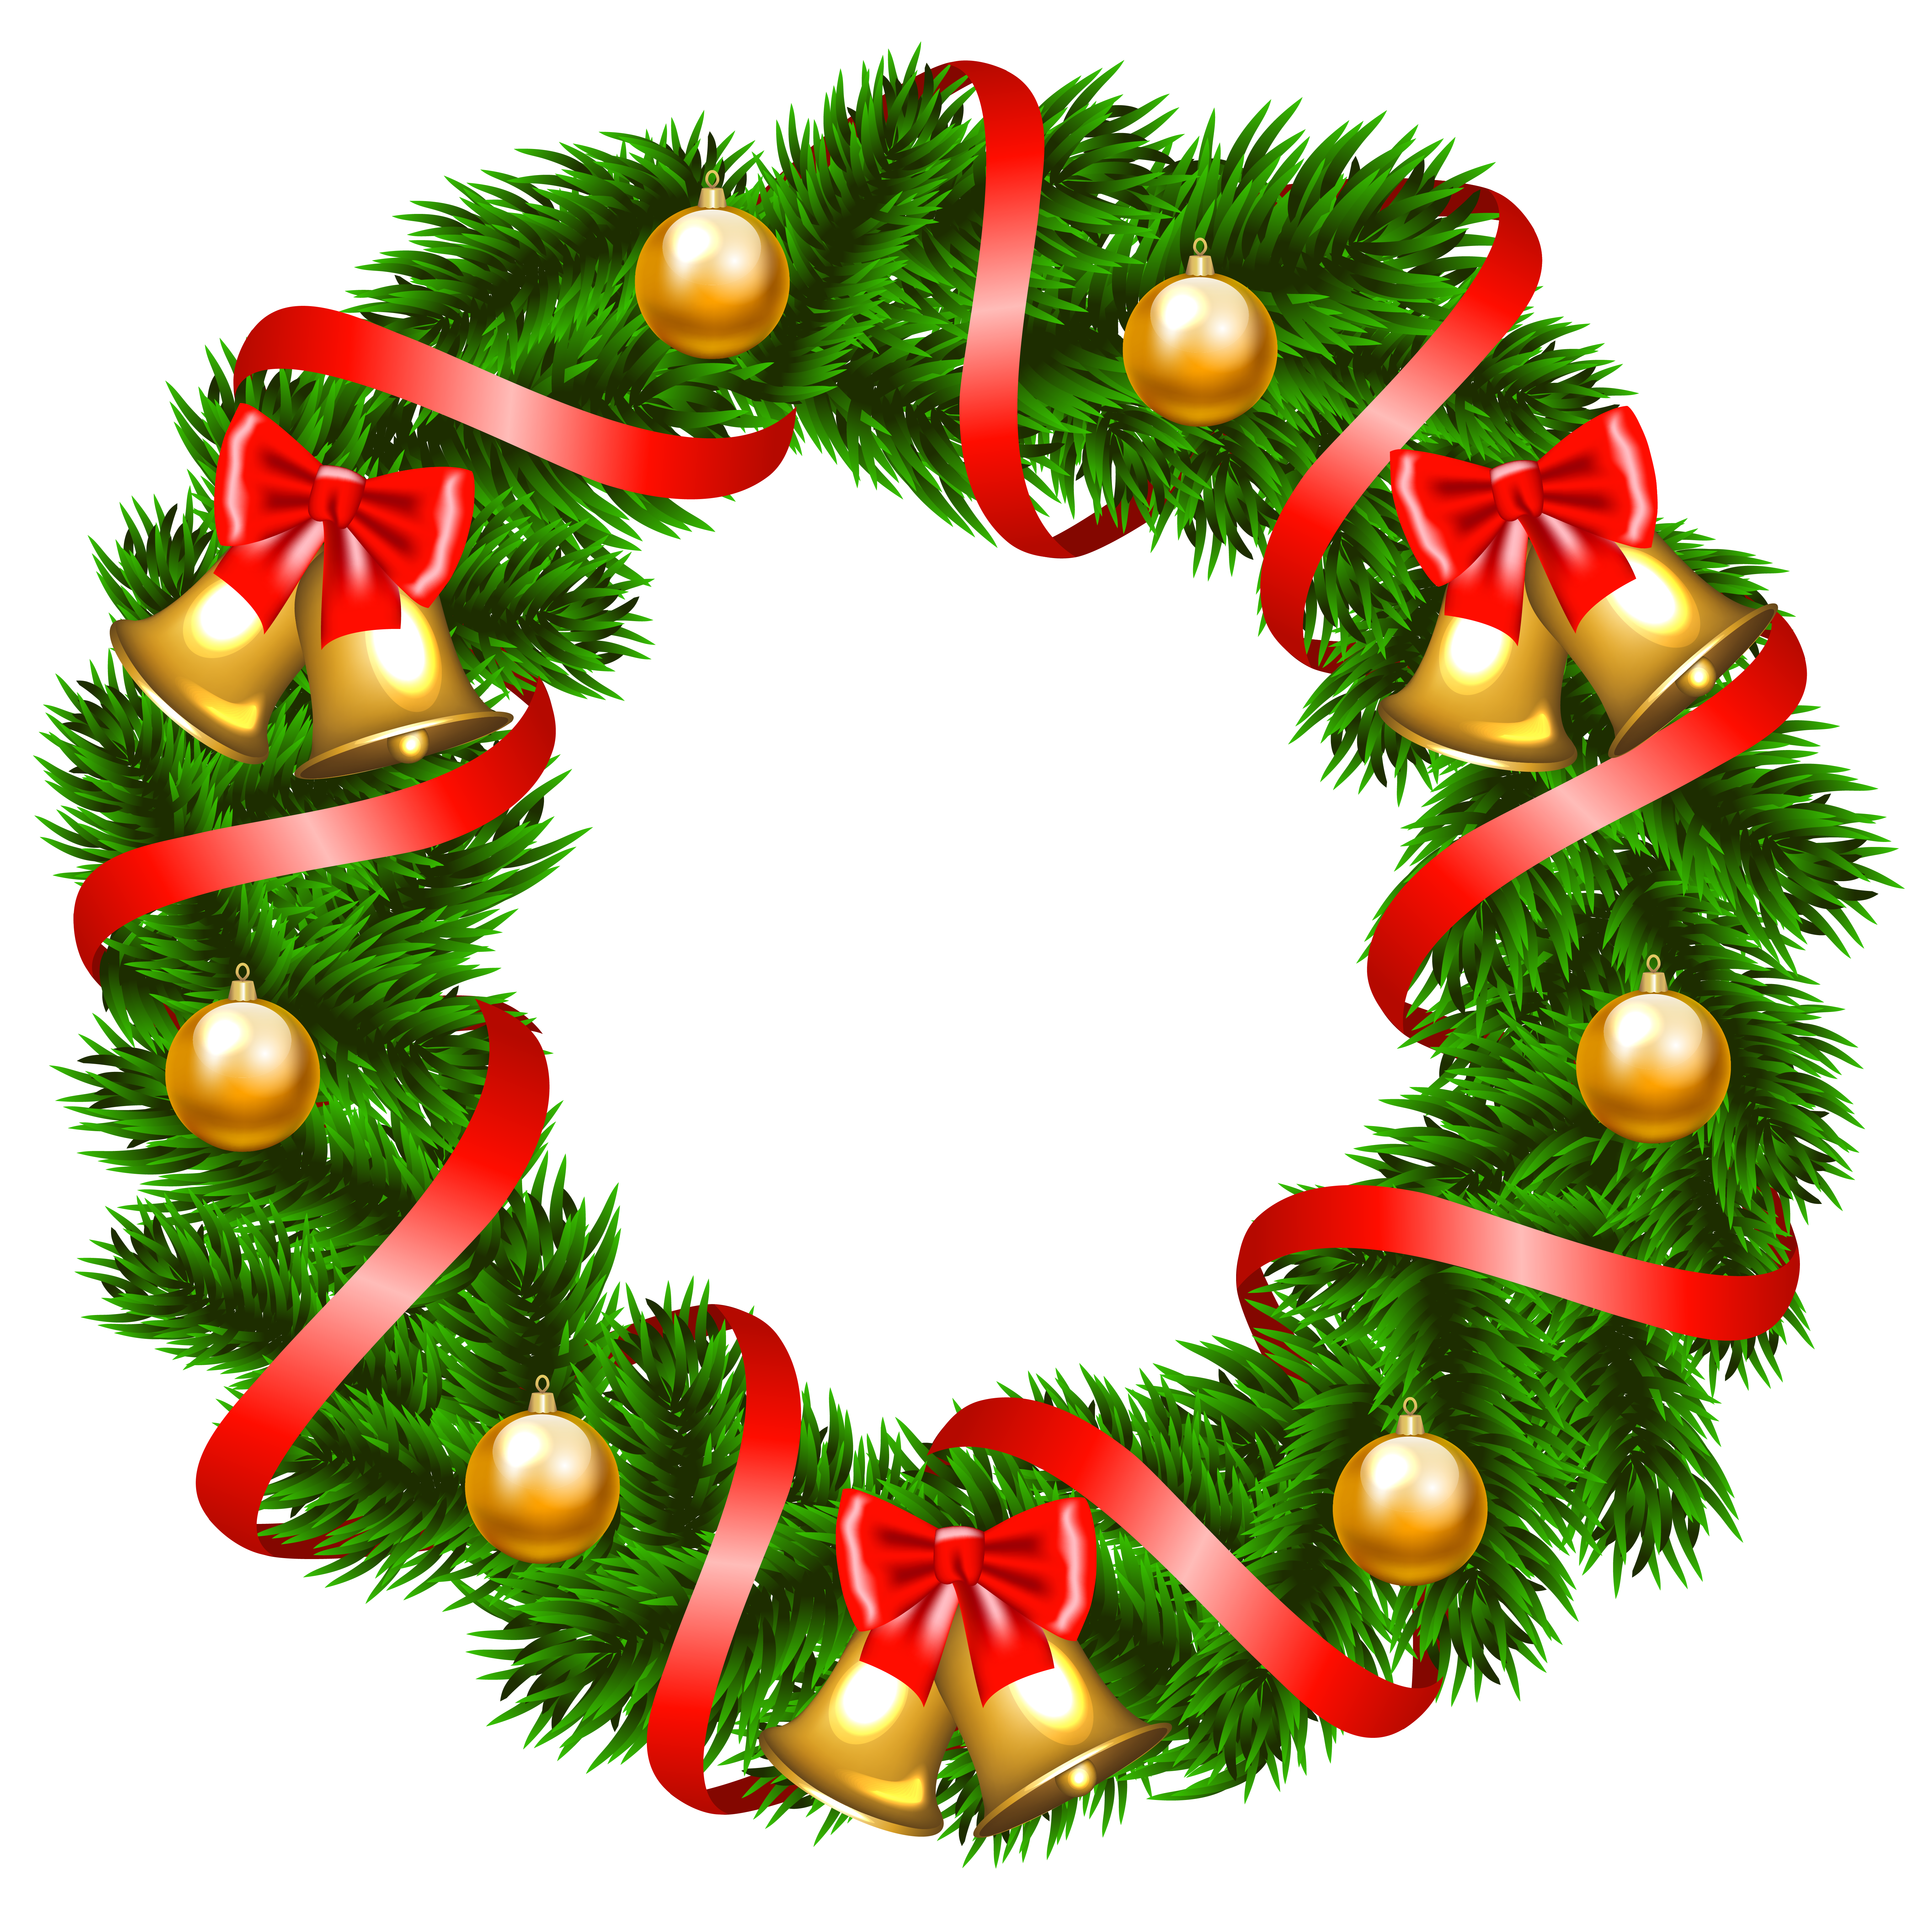 png transparent stock Christmas wreath clipart black and white. Decorative png image gallery